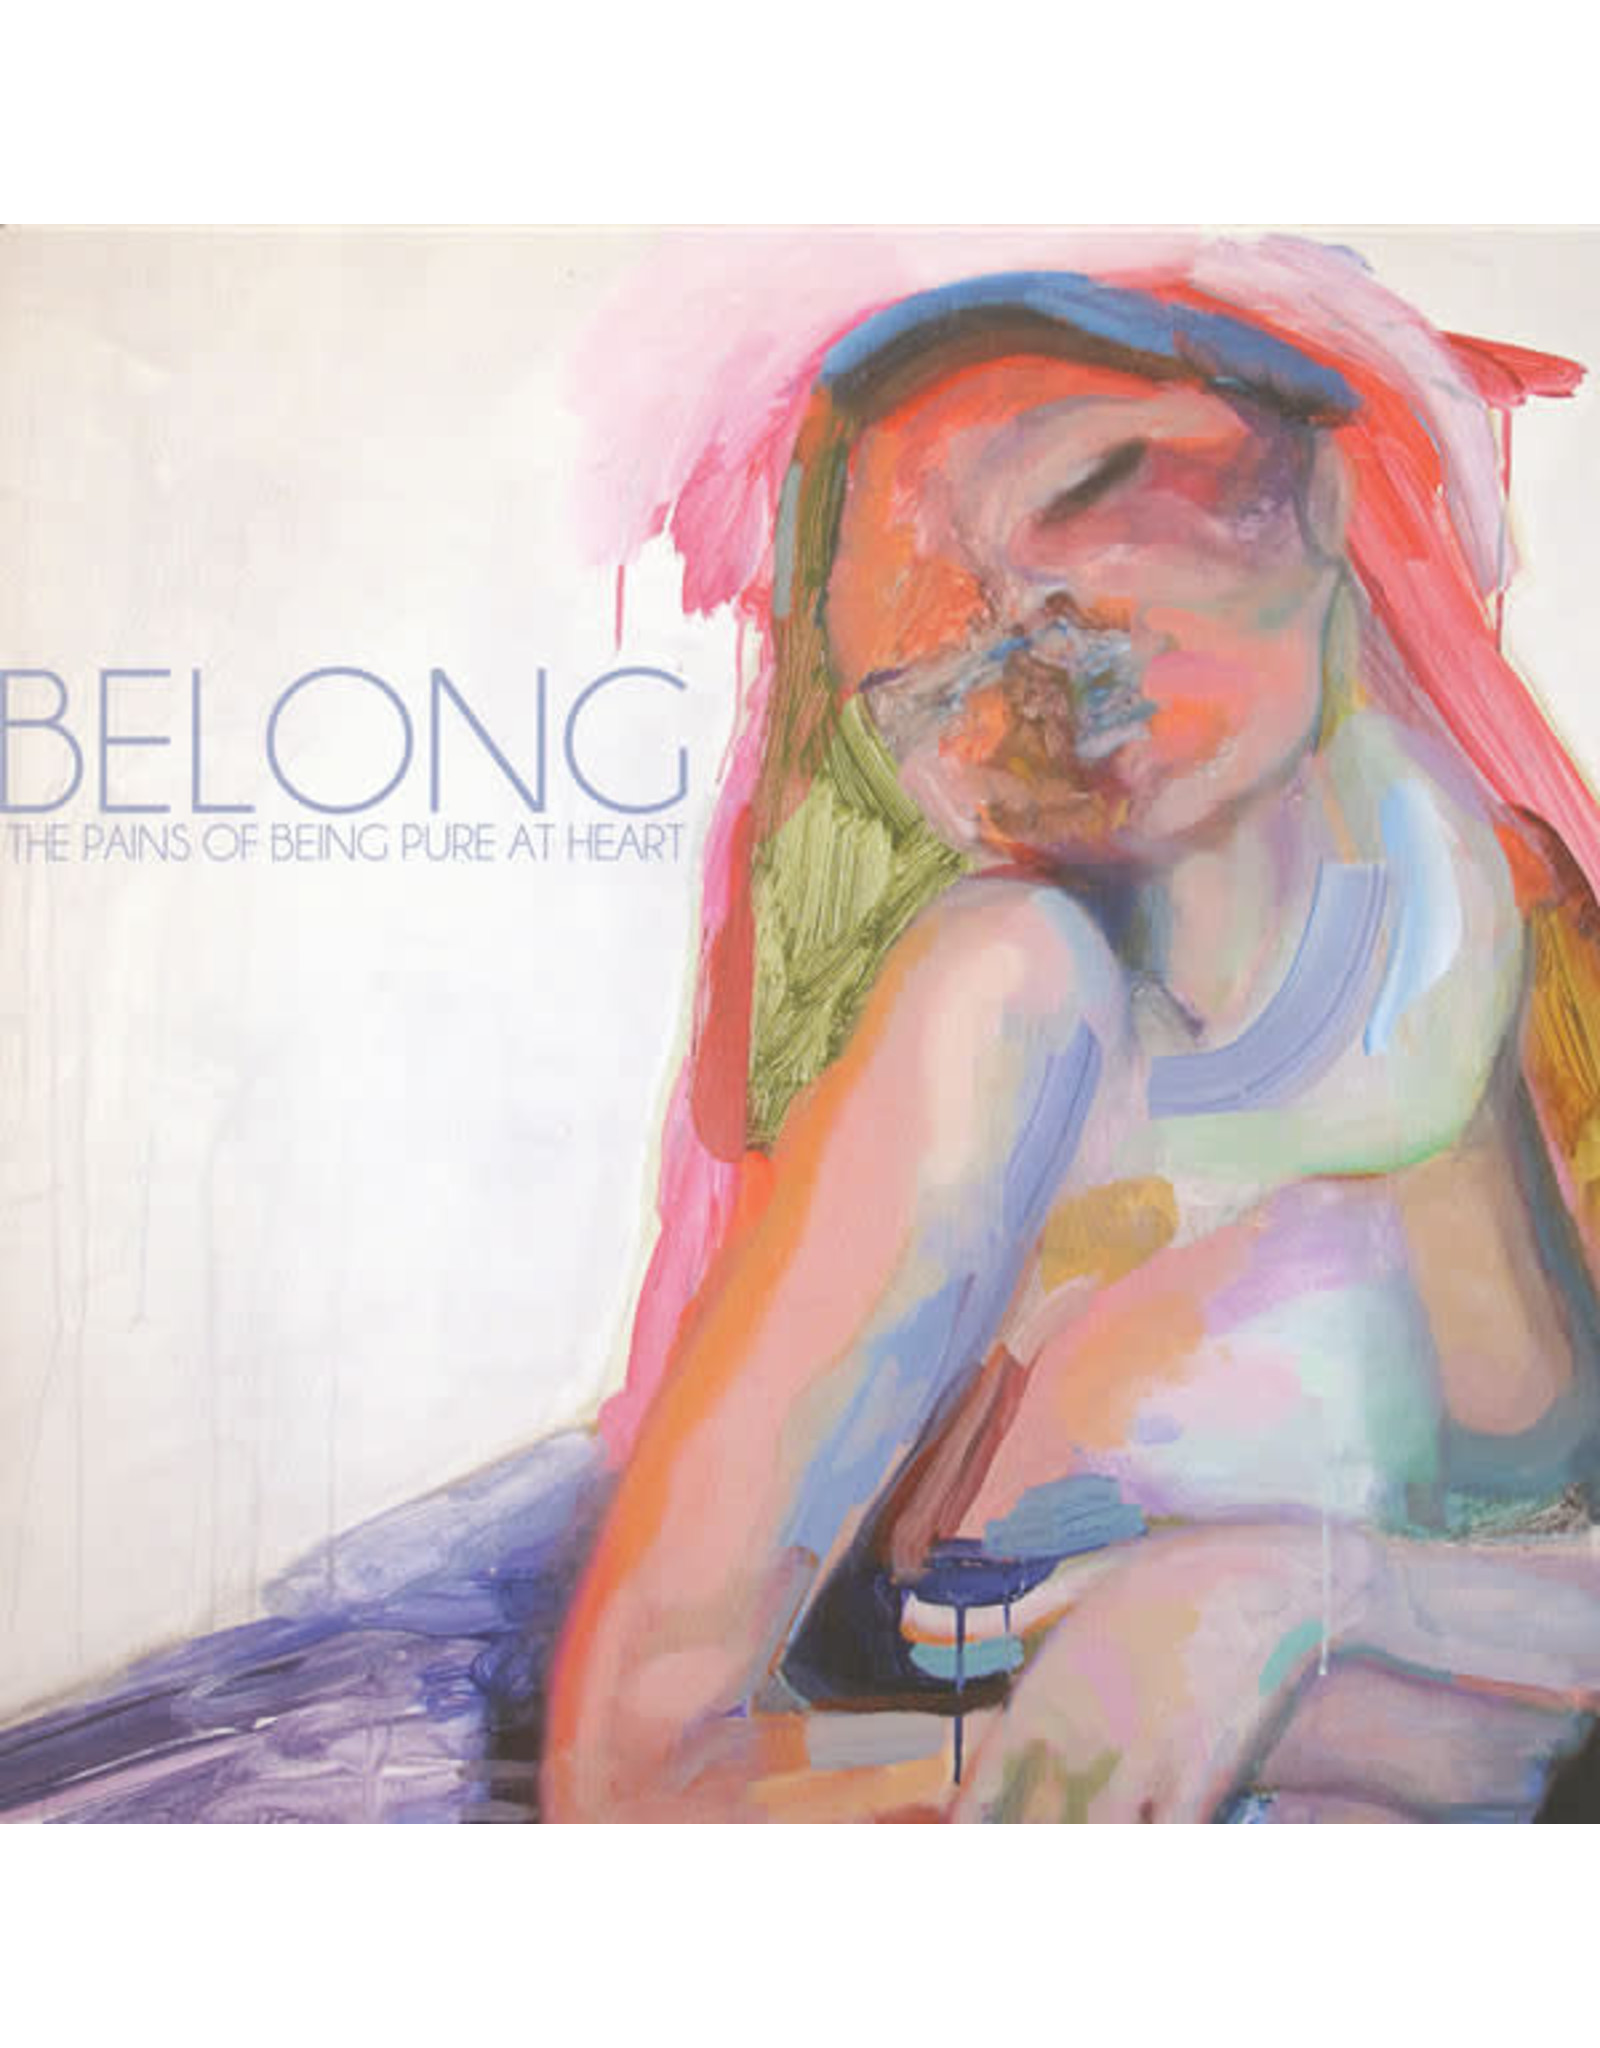 Pains Of Being Pure At Heart - Belong 7""